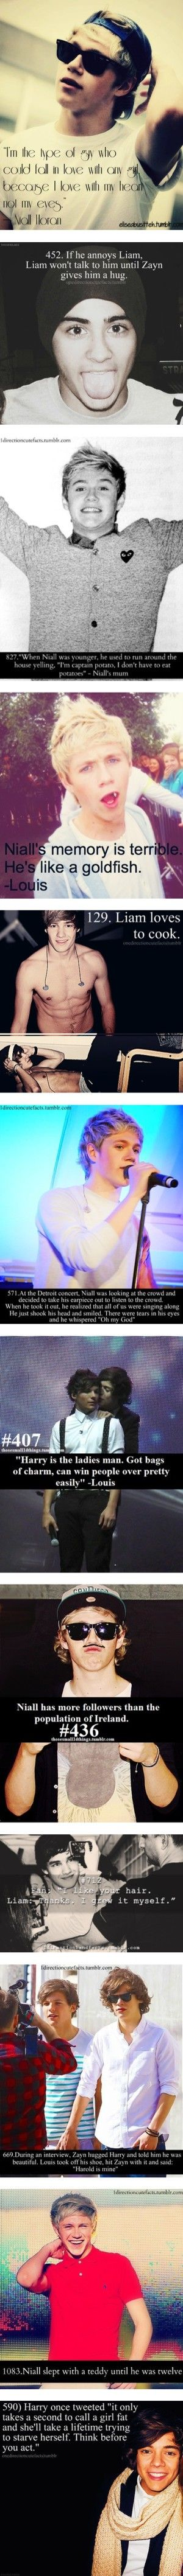 1D facts:) I LOVE the one about Niall taking out his ear piece. And when Niall's mum said that!!!! Hahaha i can TOTALLY imagine it!!! (Yes, Im american, but it didn't feel right using an irish name like Niall and then saying mom right after. You've gotta say mum)